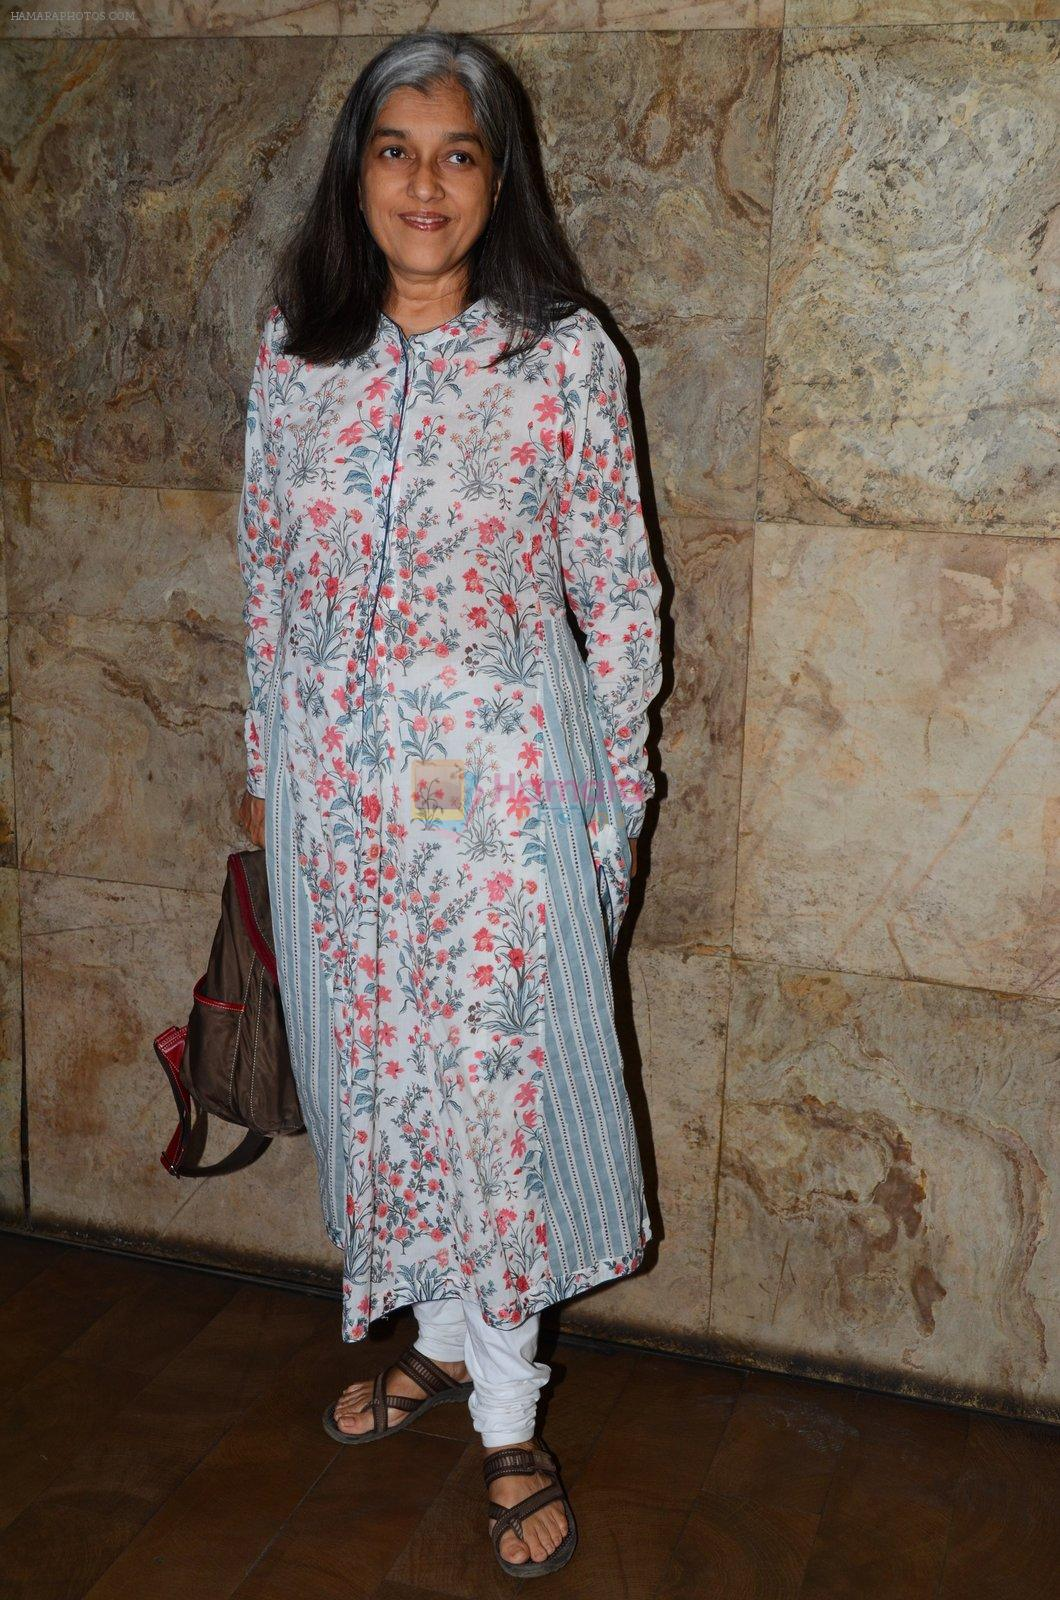 Ratna Pathak Shah at Chutney film screening in Mumbai on 28th Nov 2016